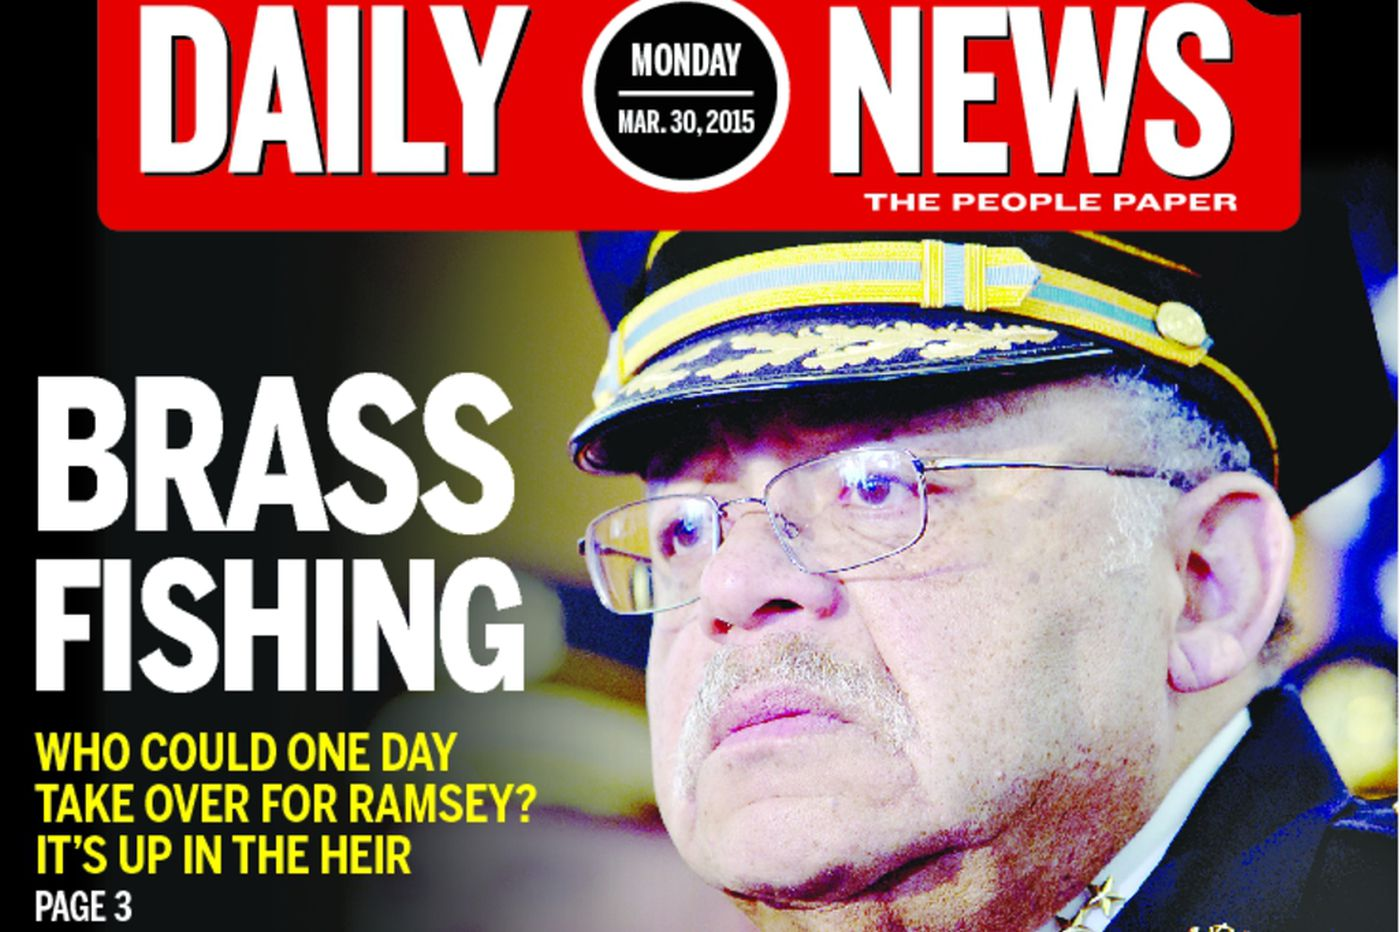 Dailynews Monthly Covers 03/30/15